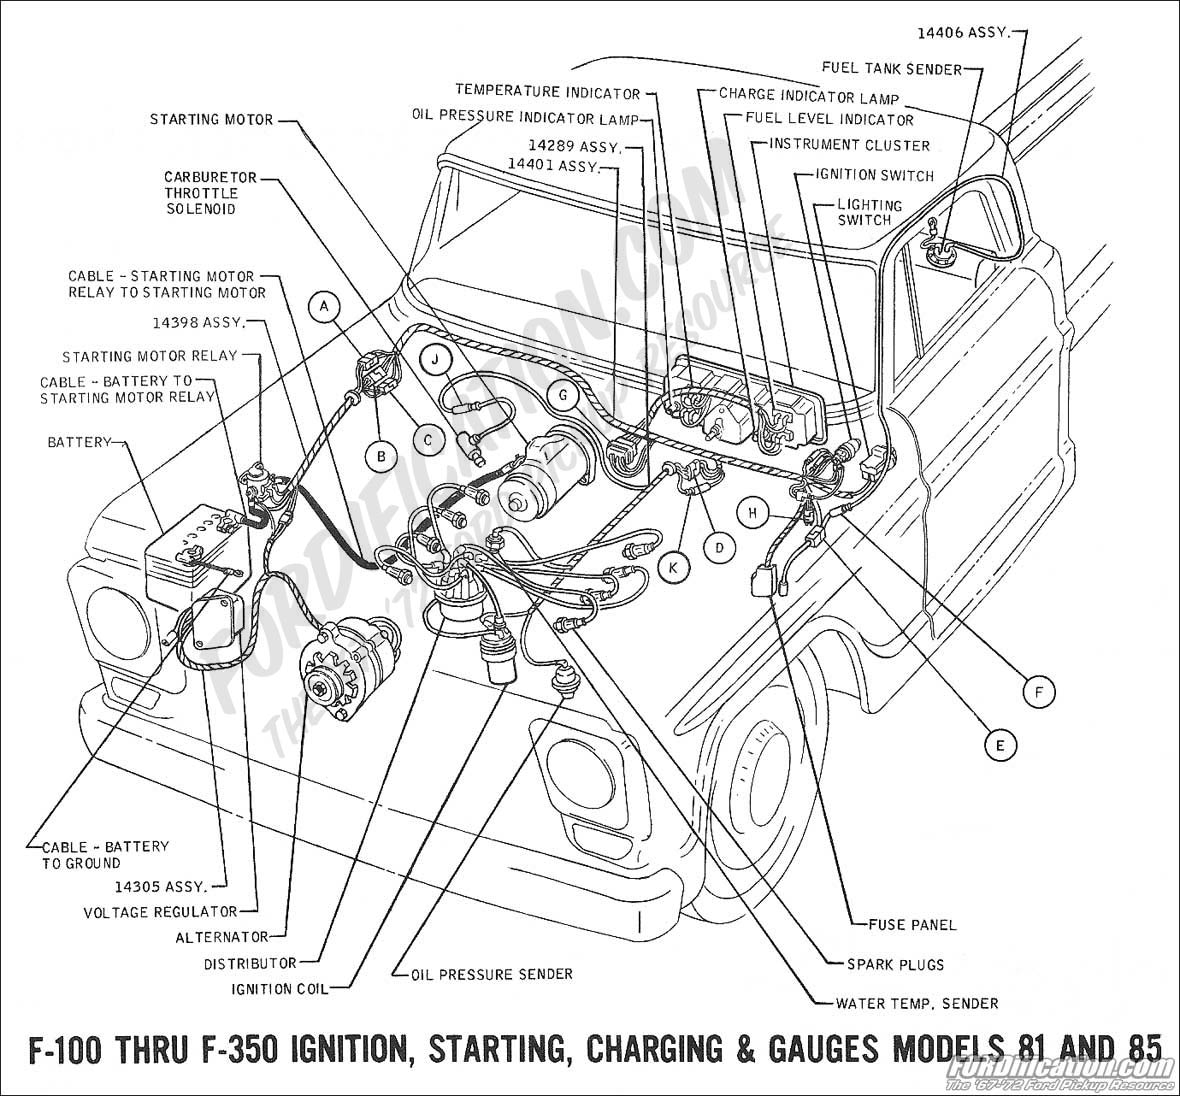 hight resolution of 1969 f 100 thru f 350 ignition charging starting and gauges 01